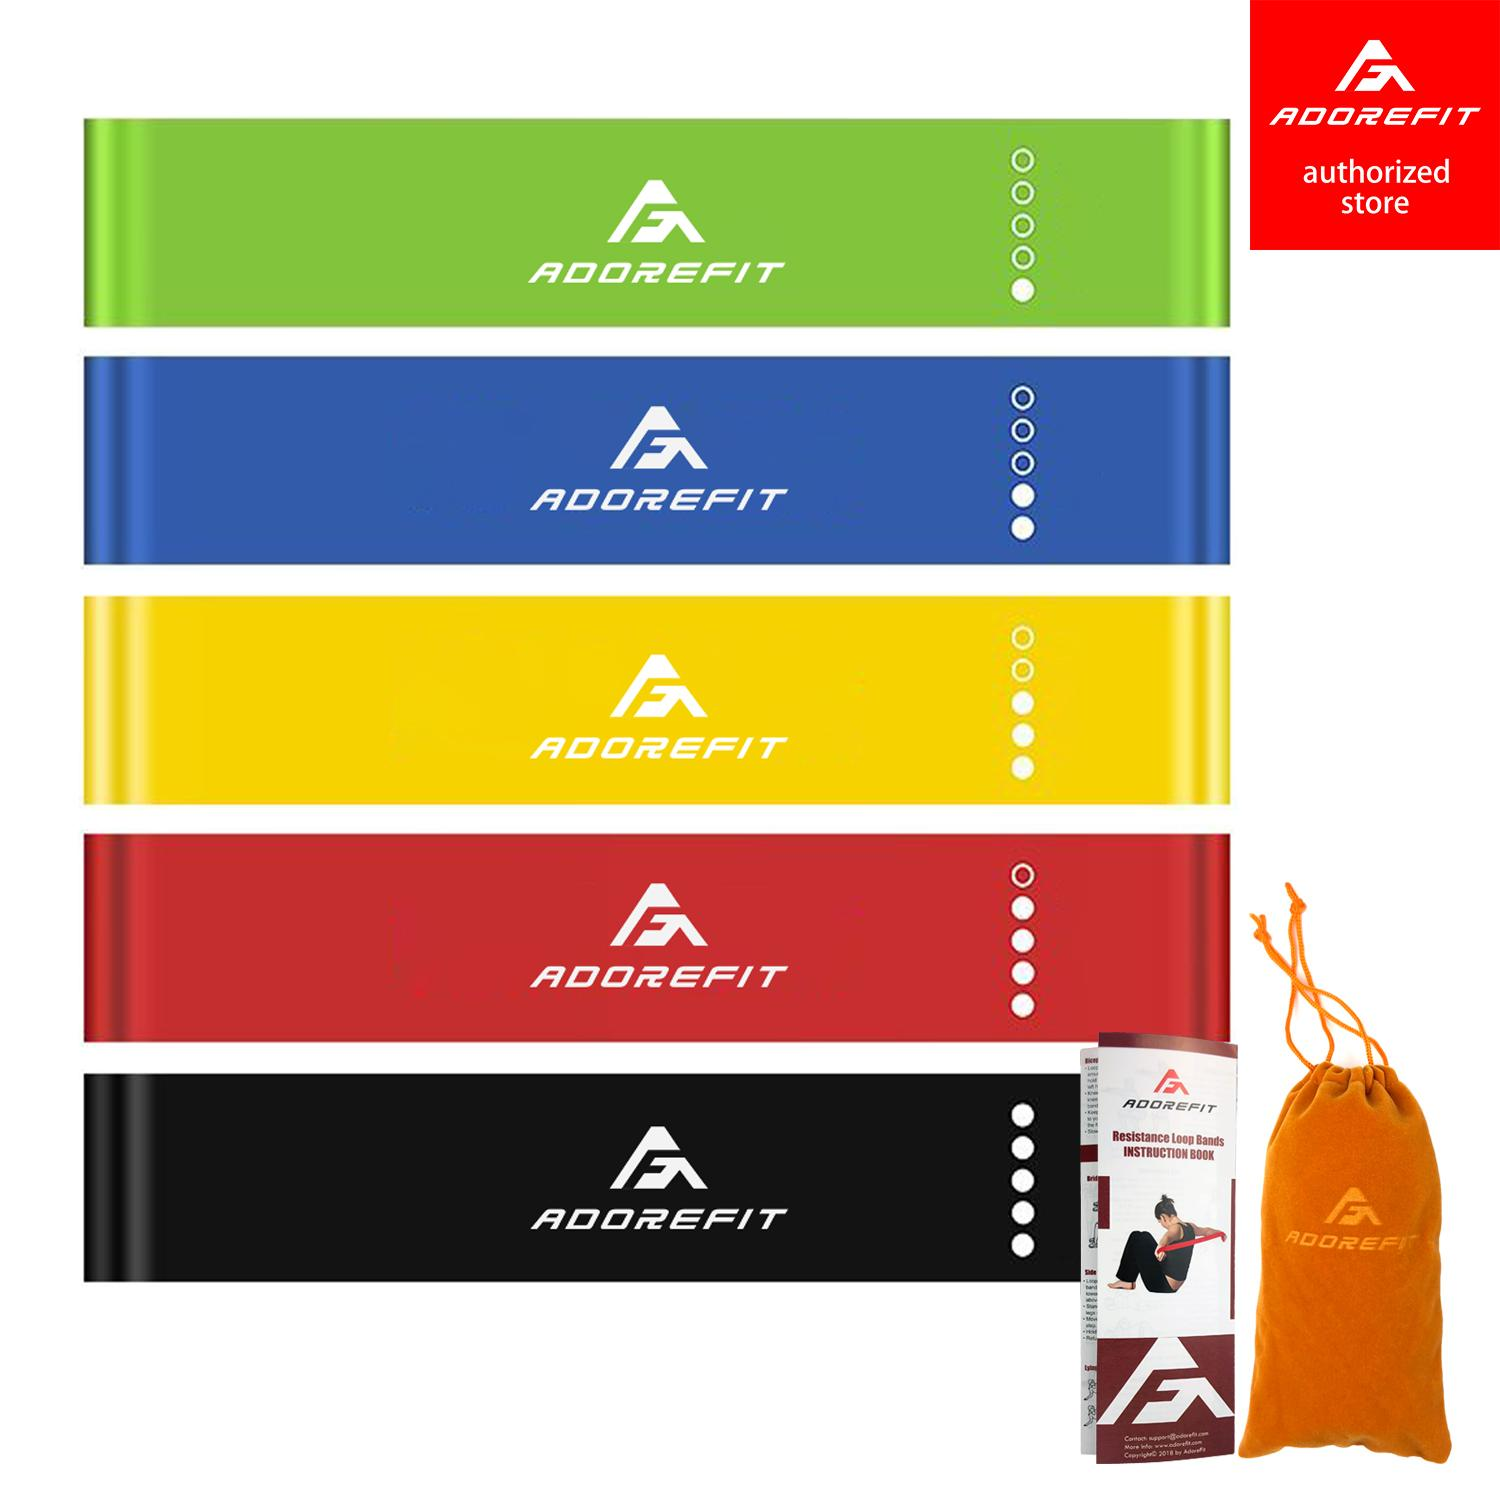 60f64a780e5a AdoreFit Resistance Bands Exercise Loops - Set of 5 Workout Flexbands for  Home Fitness,Yoga, Stretching, Physical Therapy and More - Includes Bonus  ...